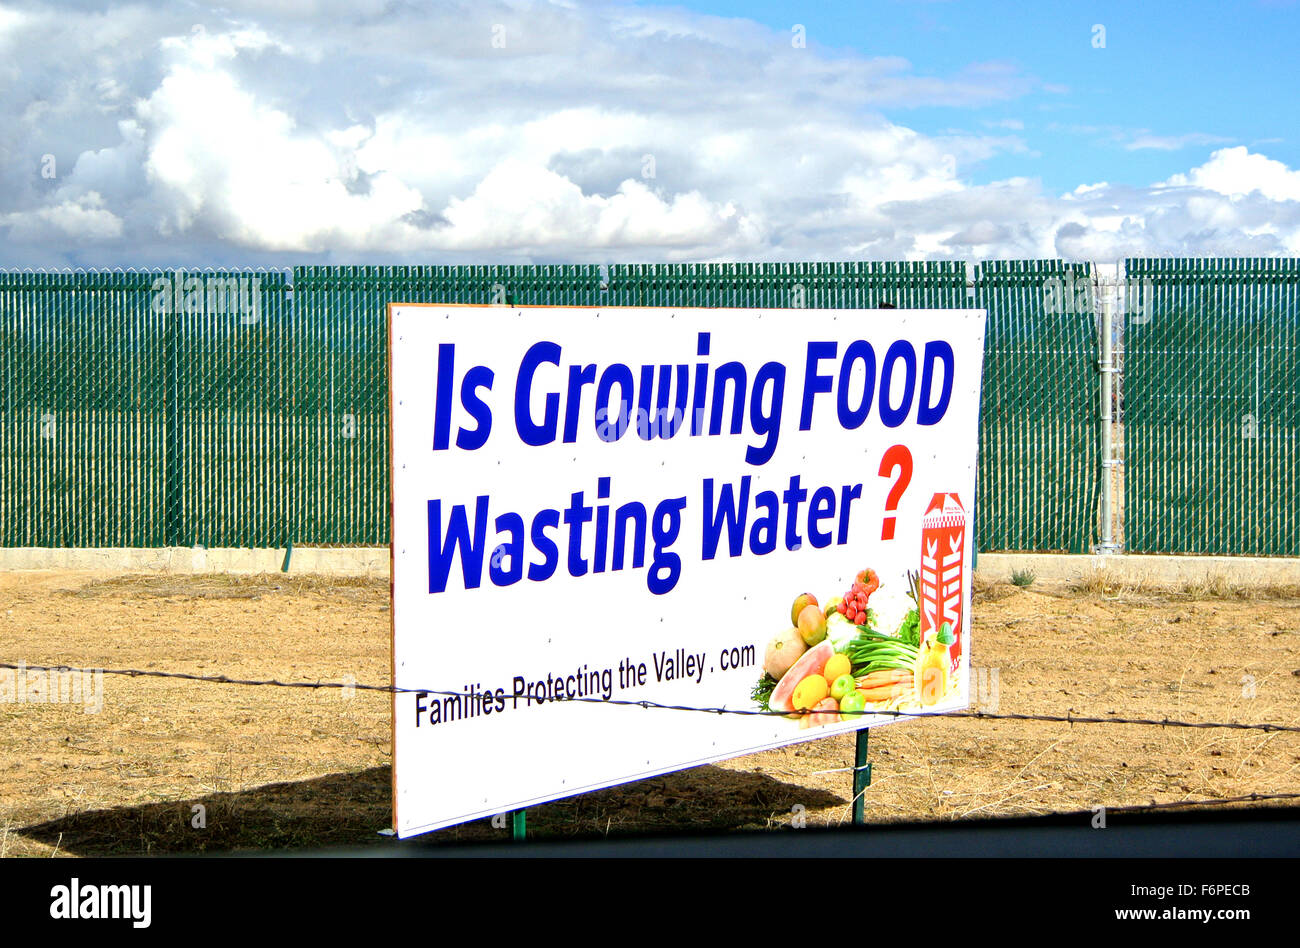 sign protesting water shortage caused by state gov. near frresno in central valley california - Stock Image